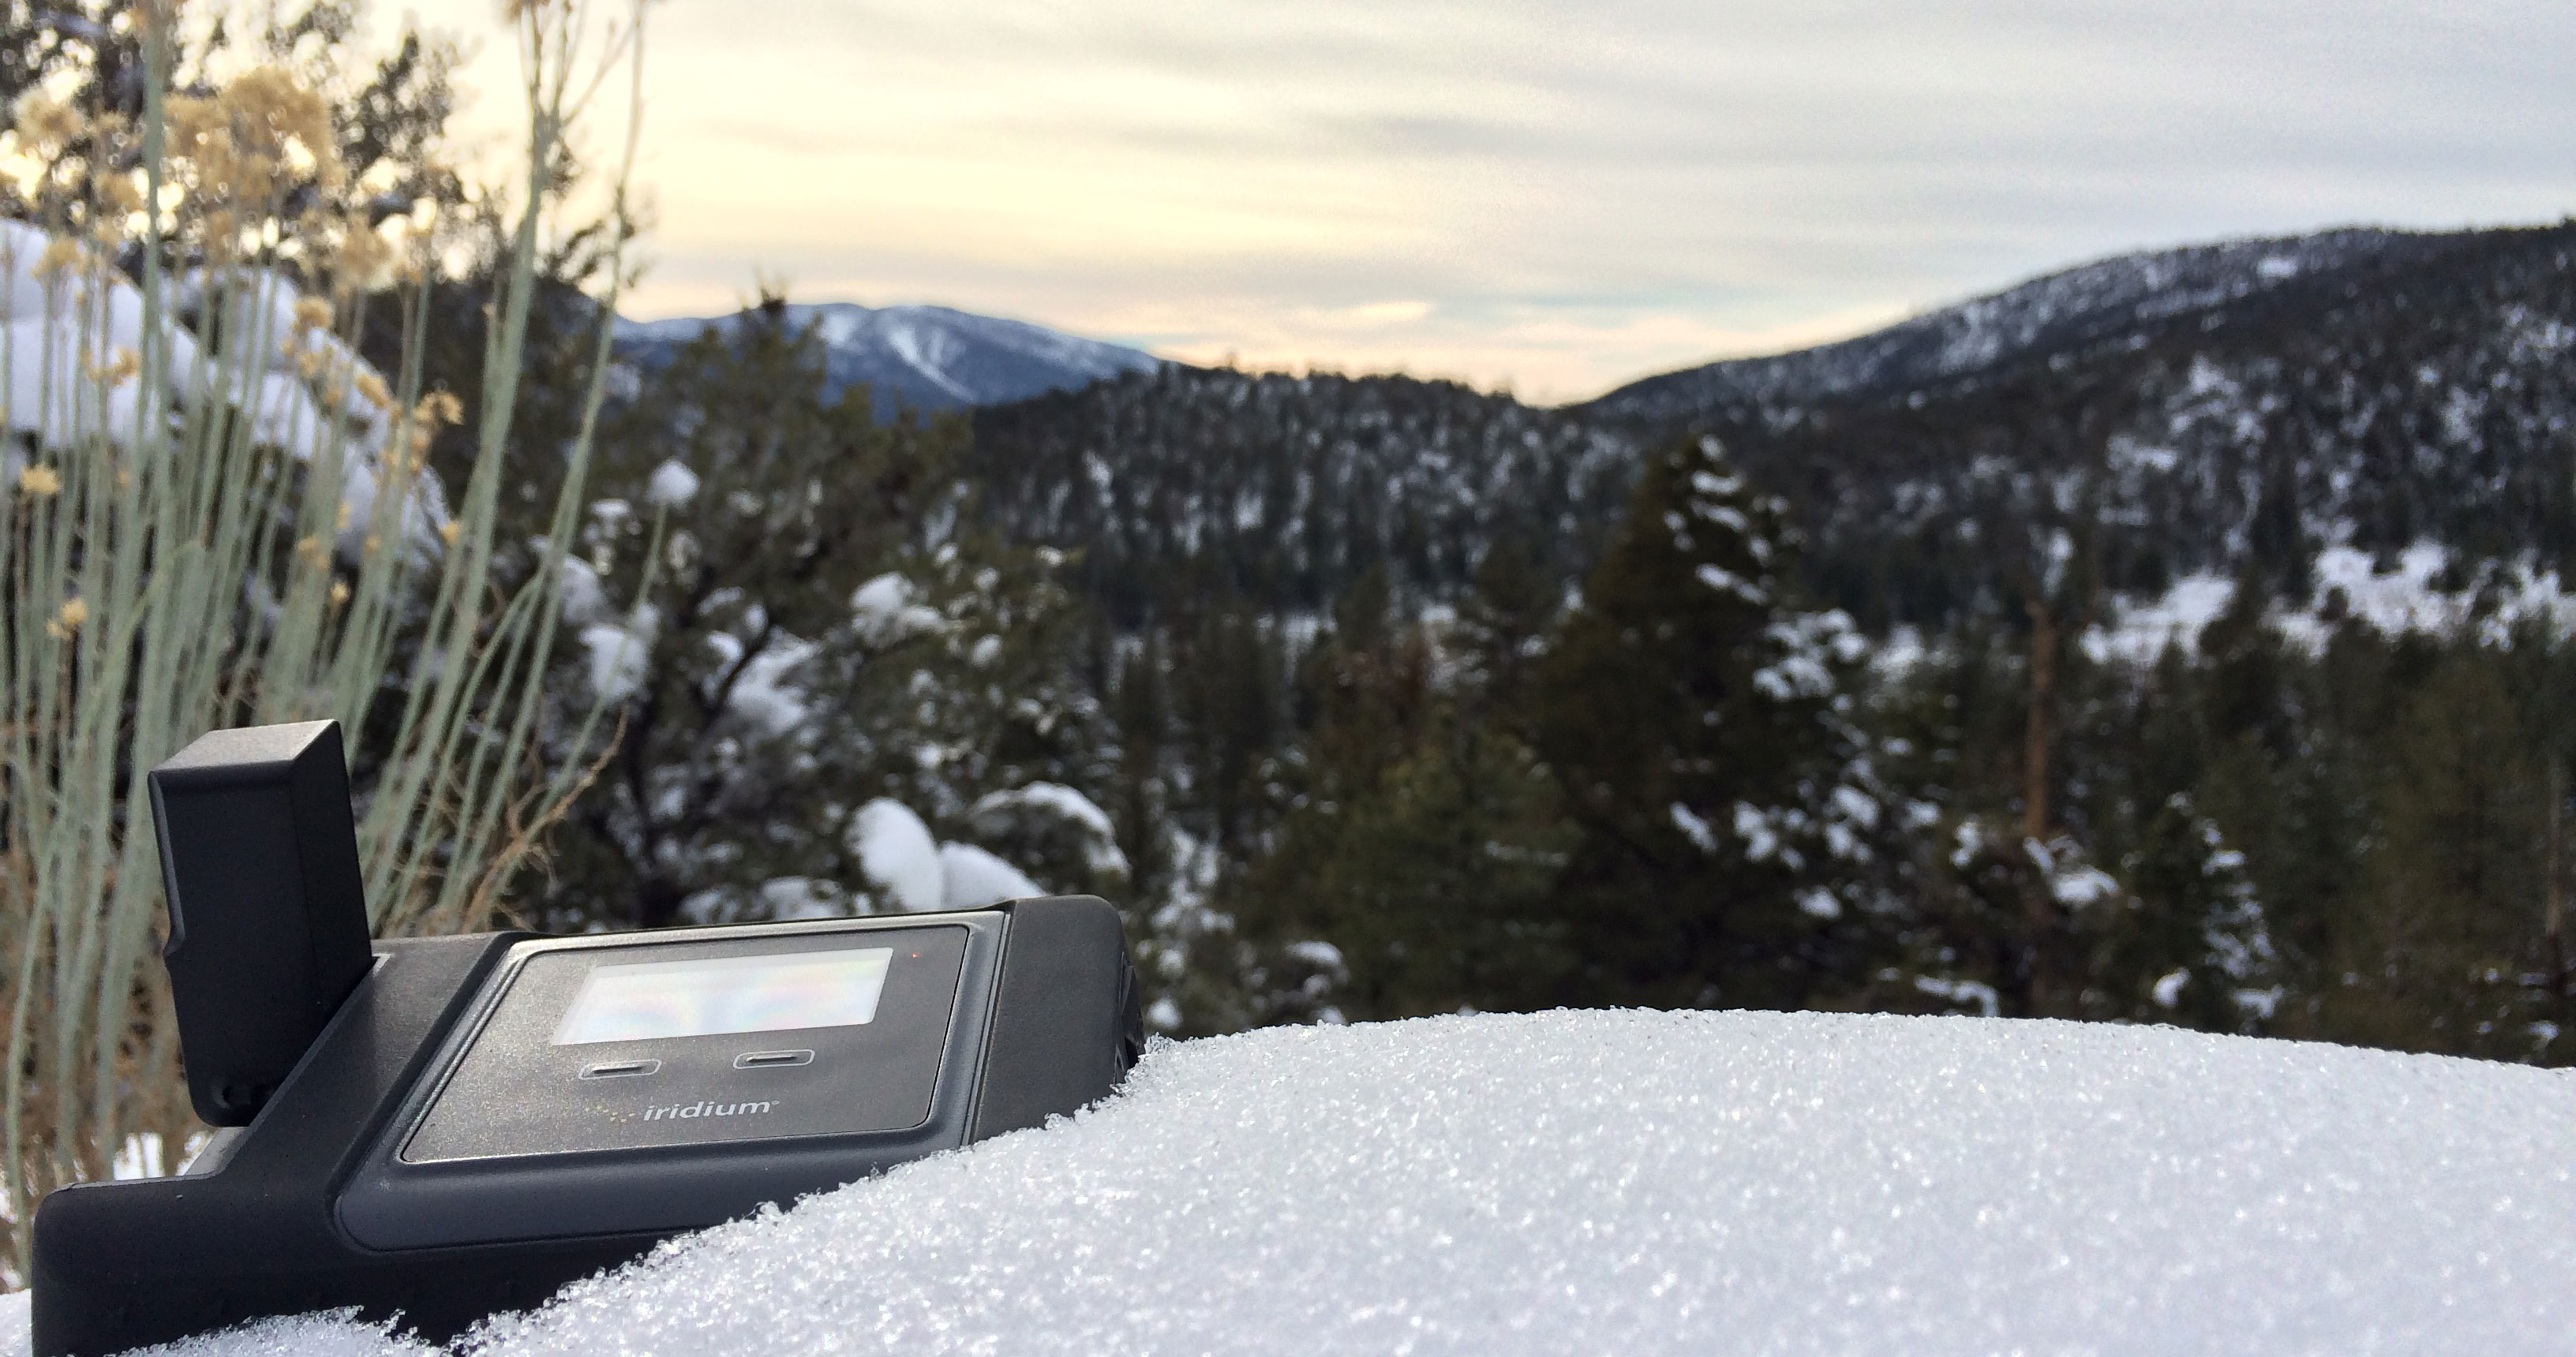 iridium-go-wifi-hotspot-in-the-mountains-2.jpg